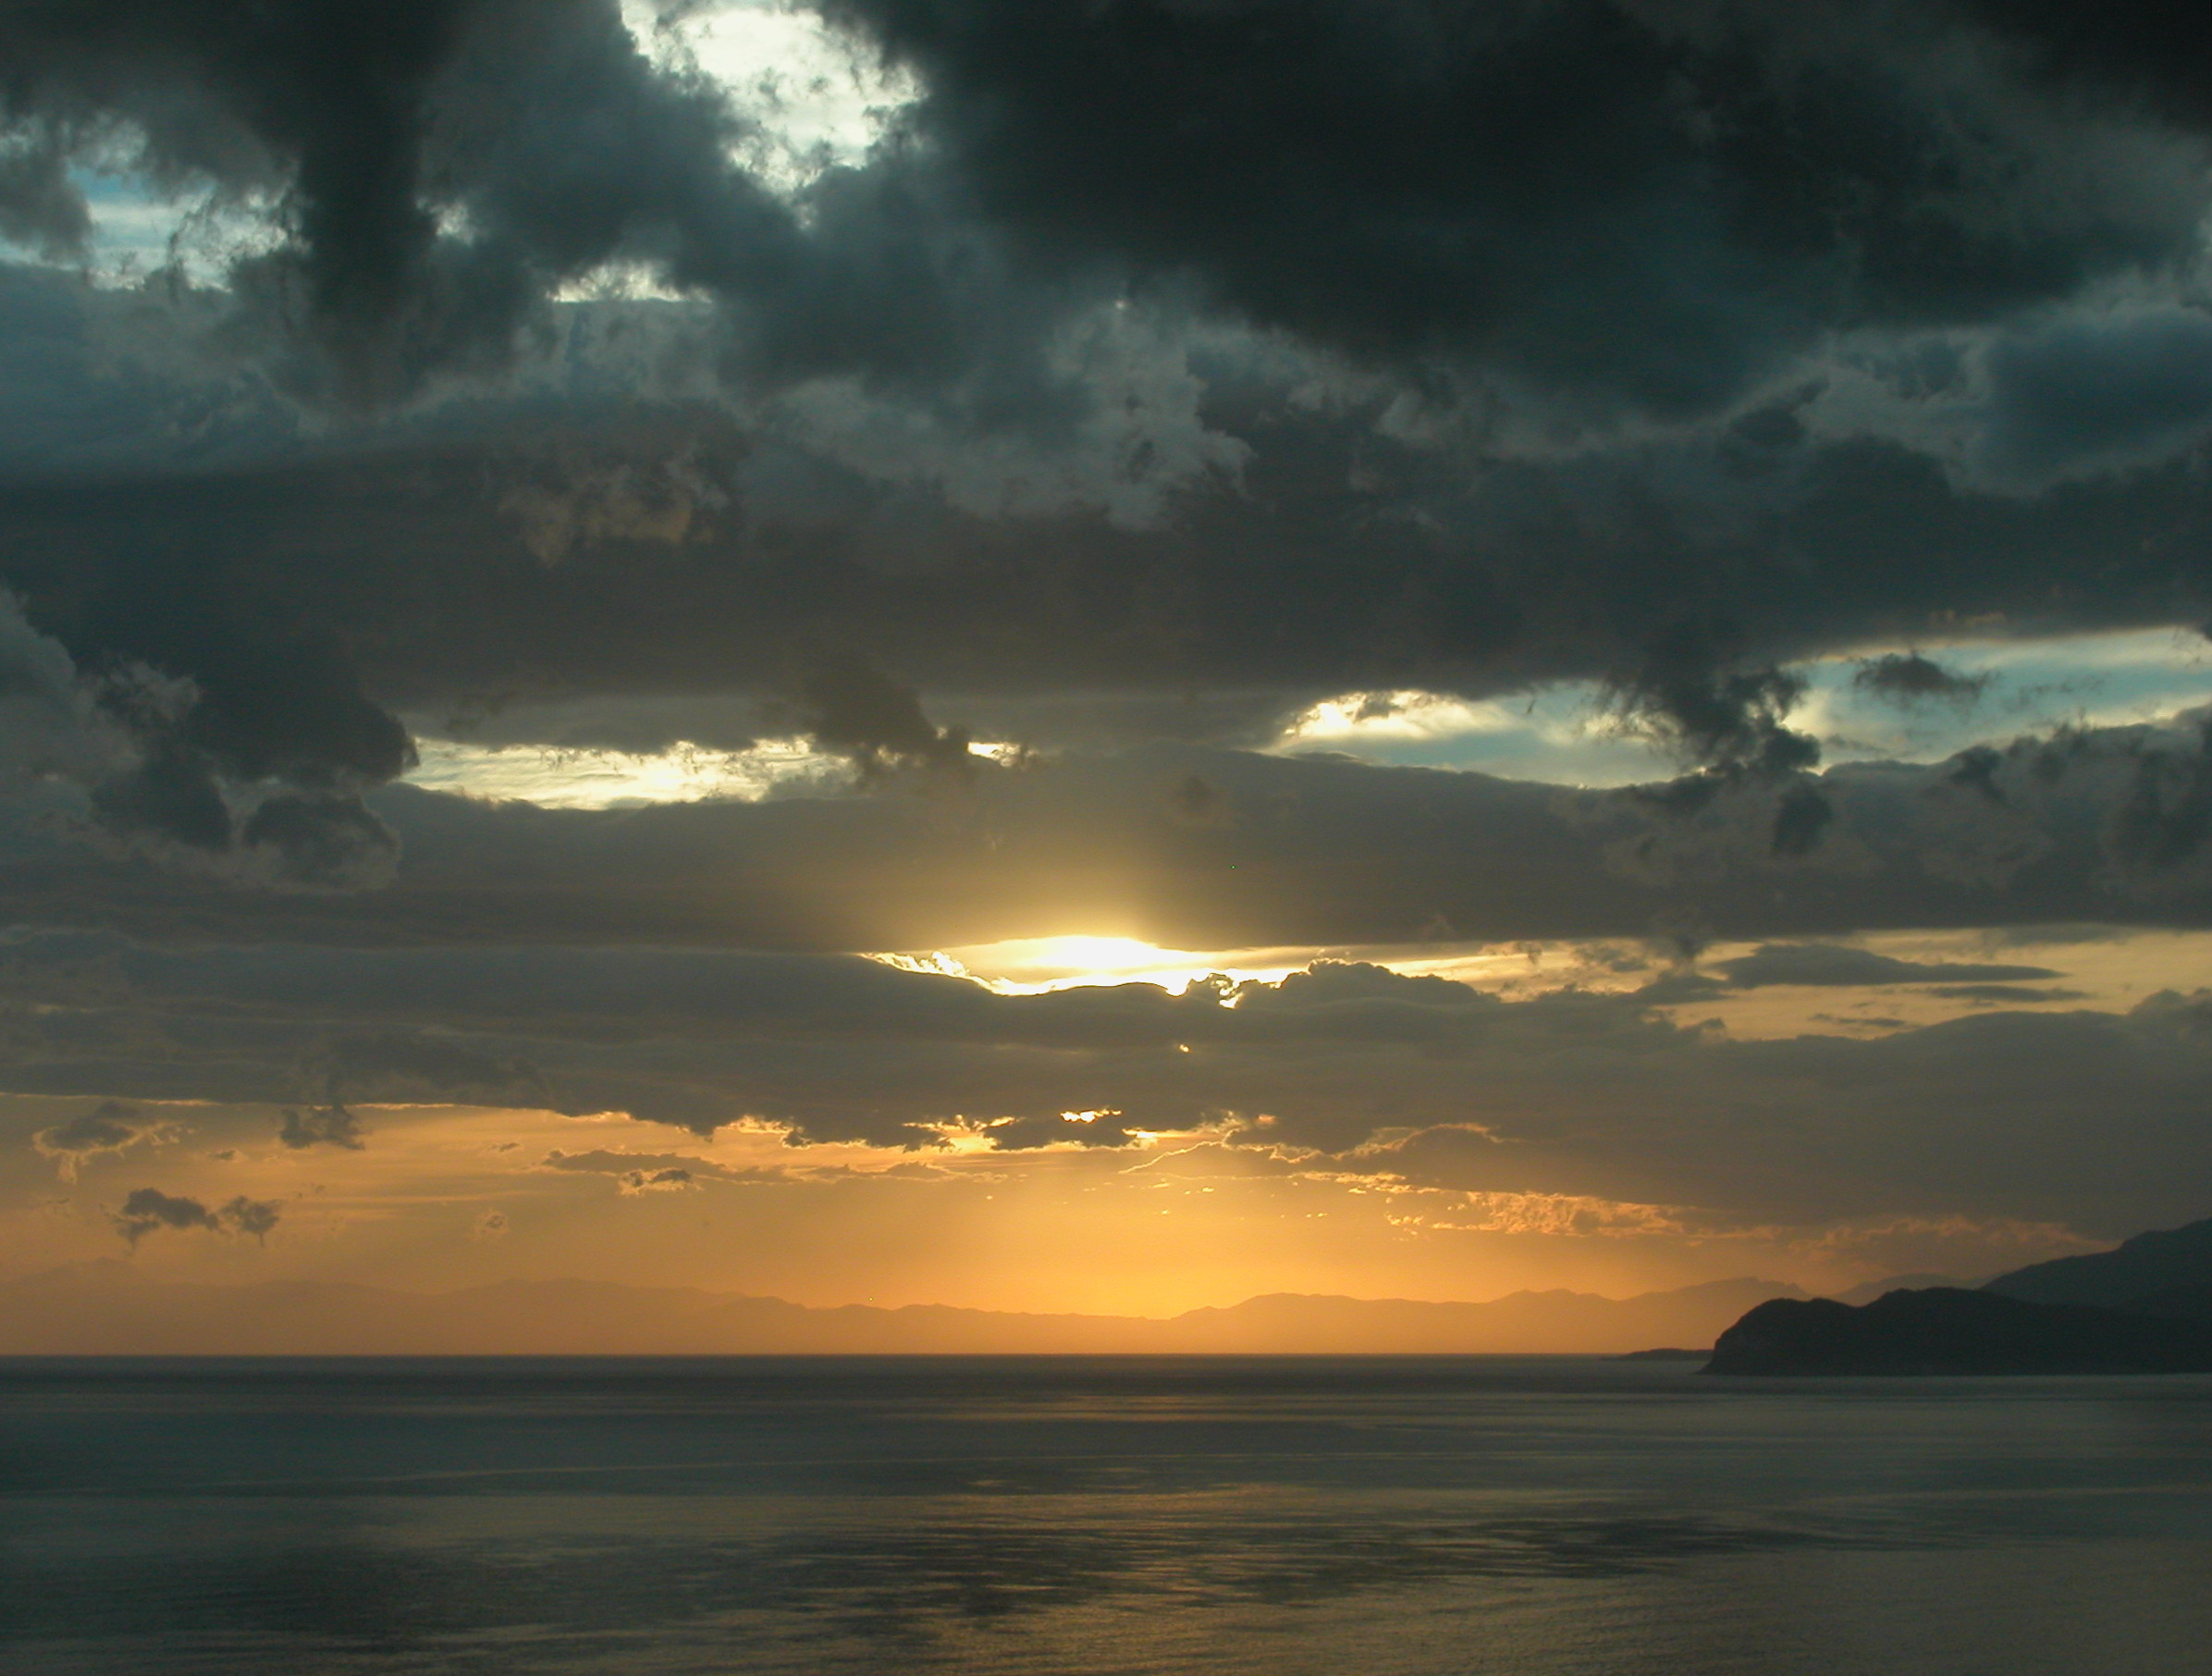 cloudy-sunset-over-the-italian-sea-elba-1394273